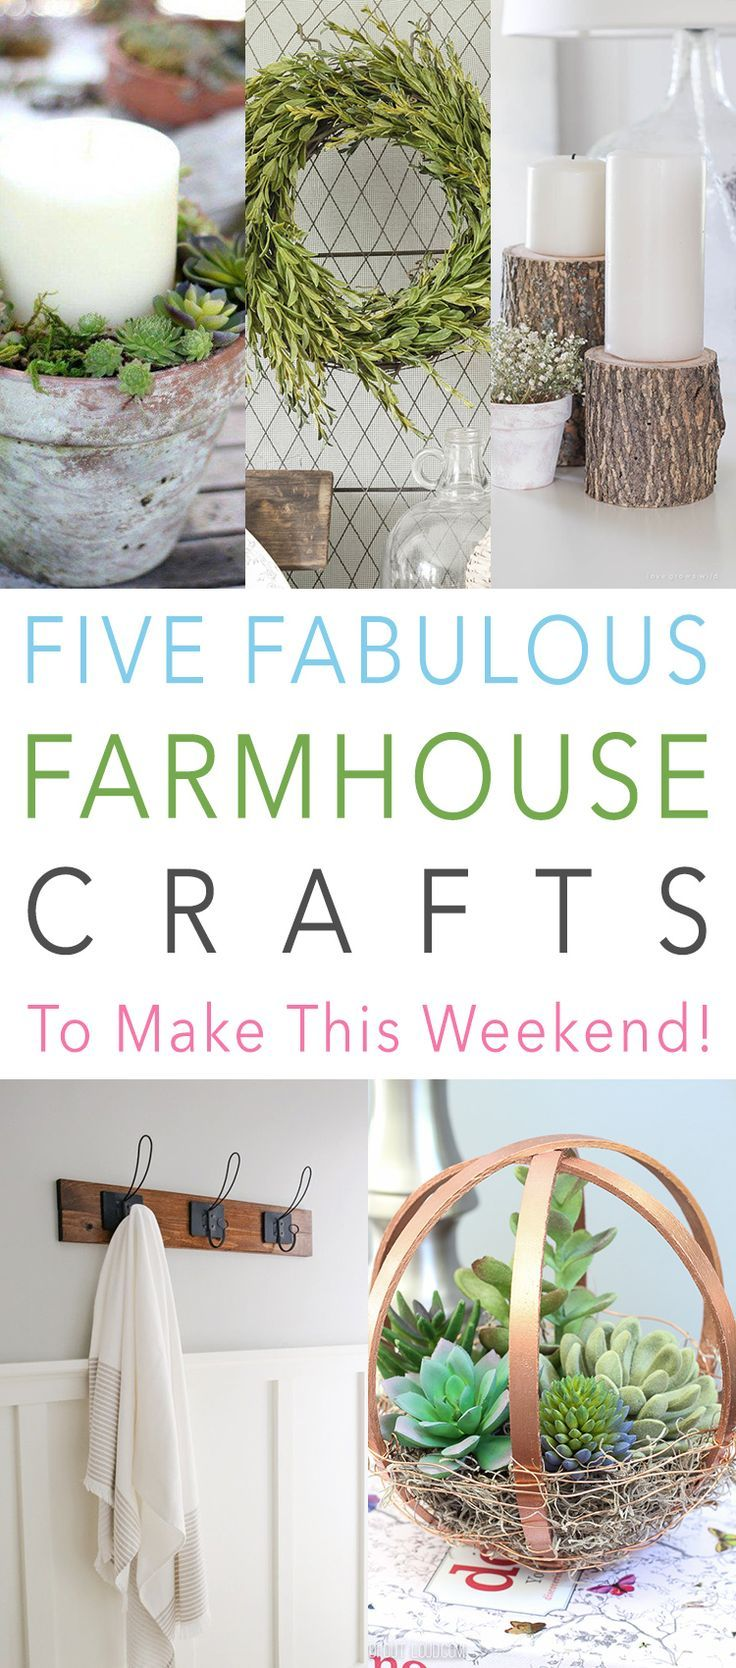 Five Fabulous Farmhouse Crafts To Make This Weekend